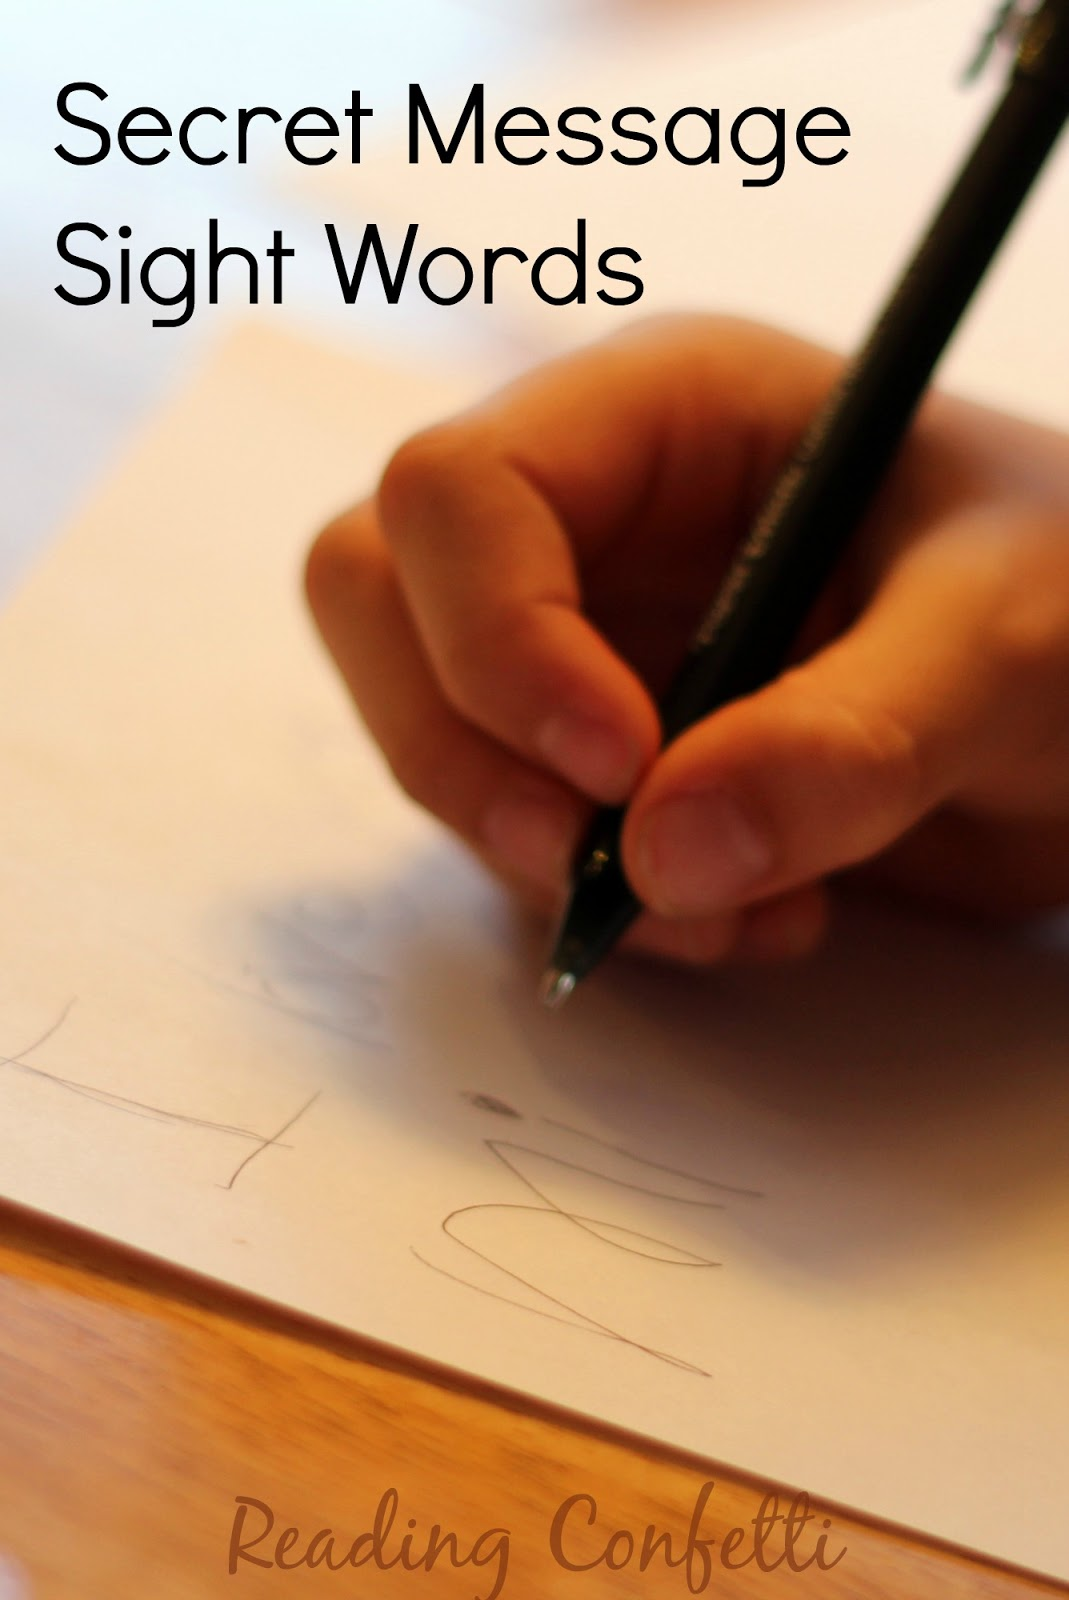 Make sight word practice more fun with a secret message activity that motivates kids to read and write.